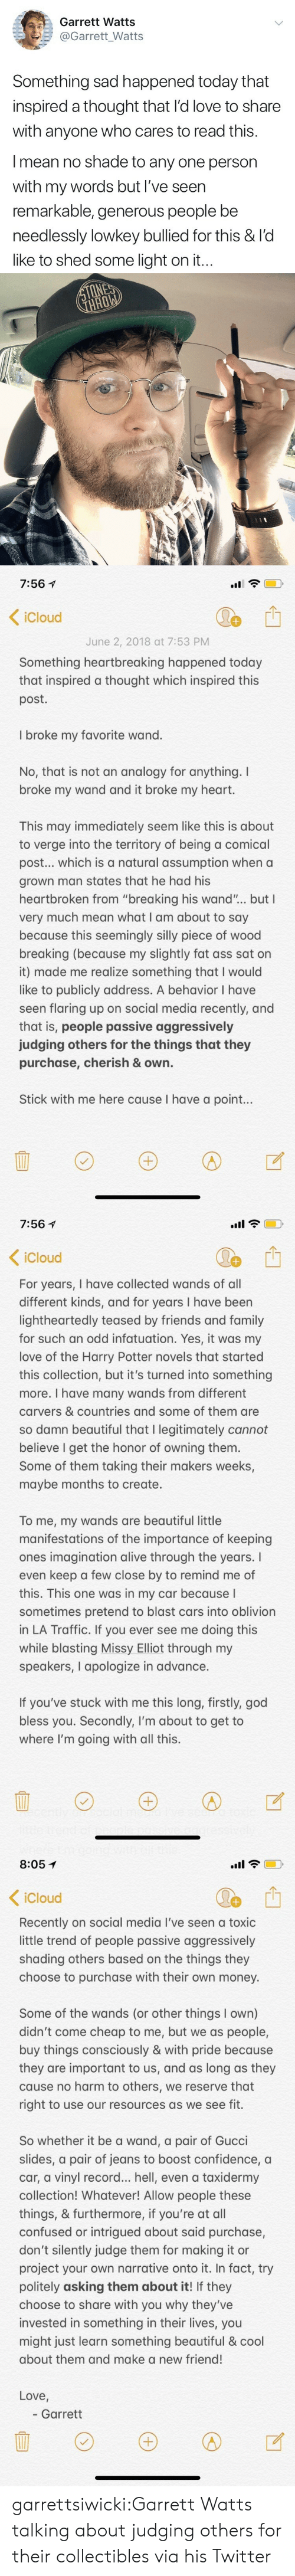 """Icloud: E a : Garrett Watts  @Garrett_Watts  Something sad happened today that  inspired a thought that l'd love to share  with anyone who cares to read this.  I mean no shade to any one person  with my words but I've seen  remarkable, generous people be  needlessly lowkey bullied for this & l'd  like to shed some light on it.   7:561  < iCloud  June 2, 2018 at 7:53 PM  Something heartbreaking happened today  that inspired a thought which inspired this  post.  I broke my favorite wand.  No, that is not an analogy for anything. I  broke my wand and it broke my heart.  This may immediately seem like this is about  to verge into the territory of being a comical  post... which is a natural assumption when a  grown man states that he had his  heartbroken from """"breaking his wand""""... but I  very much mean what I am about to say  because this seemingly silly piece of wood  breaking (because my slightly fat ass sat on  it) made me realize something that I would  like to publicly address. A behavior I have  seen flaring up on social media recently, and  that is, people passive aggressively  judging others for the things that they  purchase, cherish & own.  Stick with me here cause I have a point...   7:56 1  .uil  Cloud  For years, I have collected wands of all  different kinds, and for years I have been  lightheartedly teased by friends and family  for such an odd infatuation. Yes, it was my  love of the Harry Potter novels that started  this collection, but it's turned into something  more. I have many wands from different  carvers & countries and some of them are  so damn beautiful that I legitimately cannot  believe I get the honor of owning themm  Some of them taking their makers weeks,  maybe months to create.  tH  To me, my wands are beautiful little  manifestations of the importance of keeping  ones imagination alive through the years. I  even keep a few close by to remind me of  this. This one was in my car because l  sometimes pretend to blast cars into oblivion  in"""